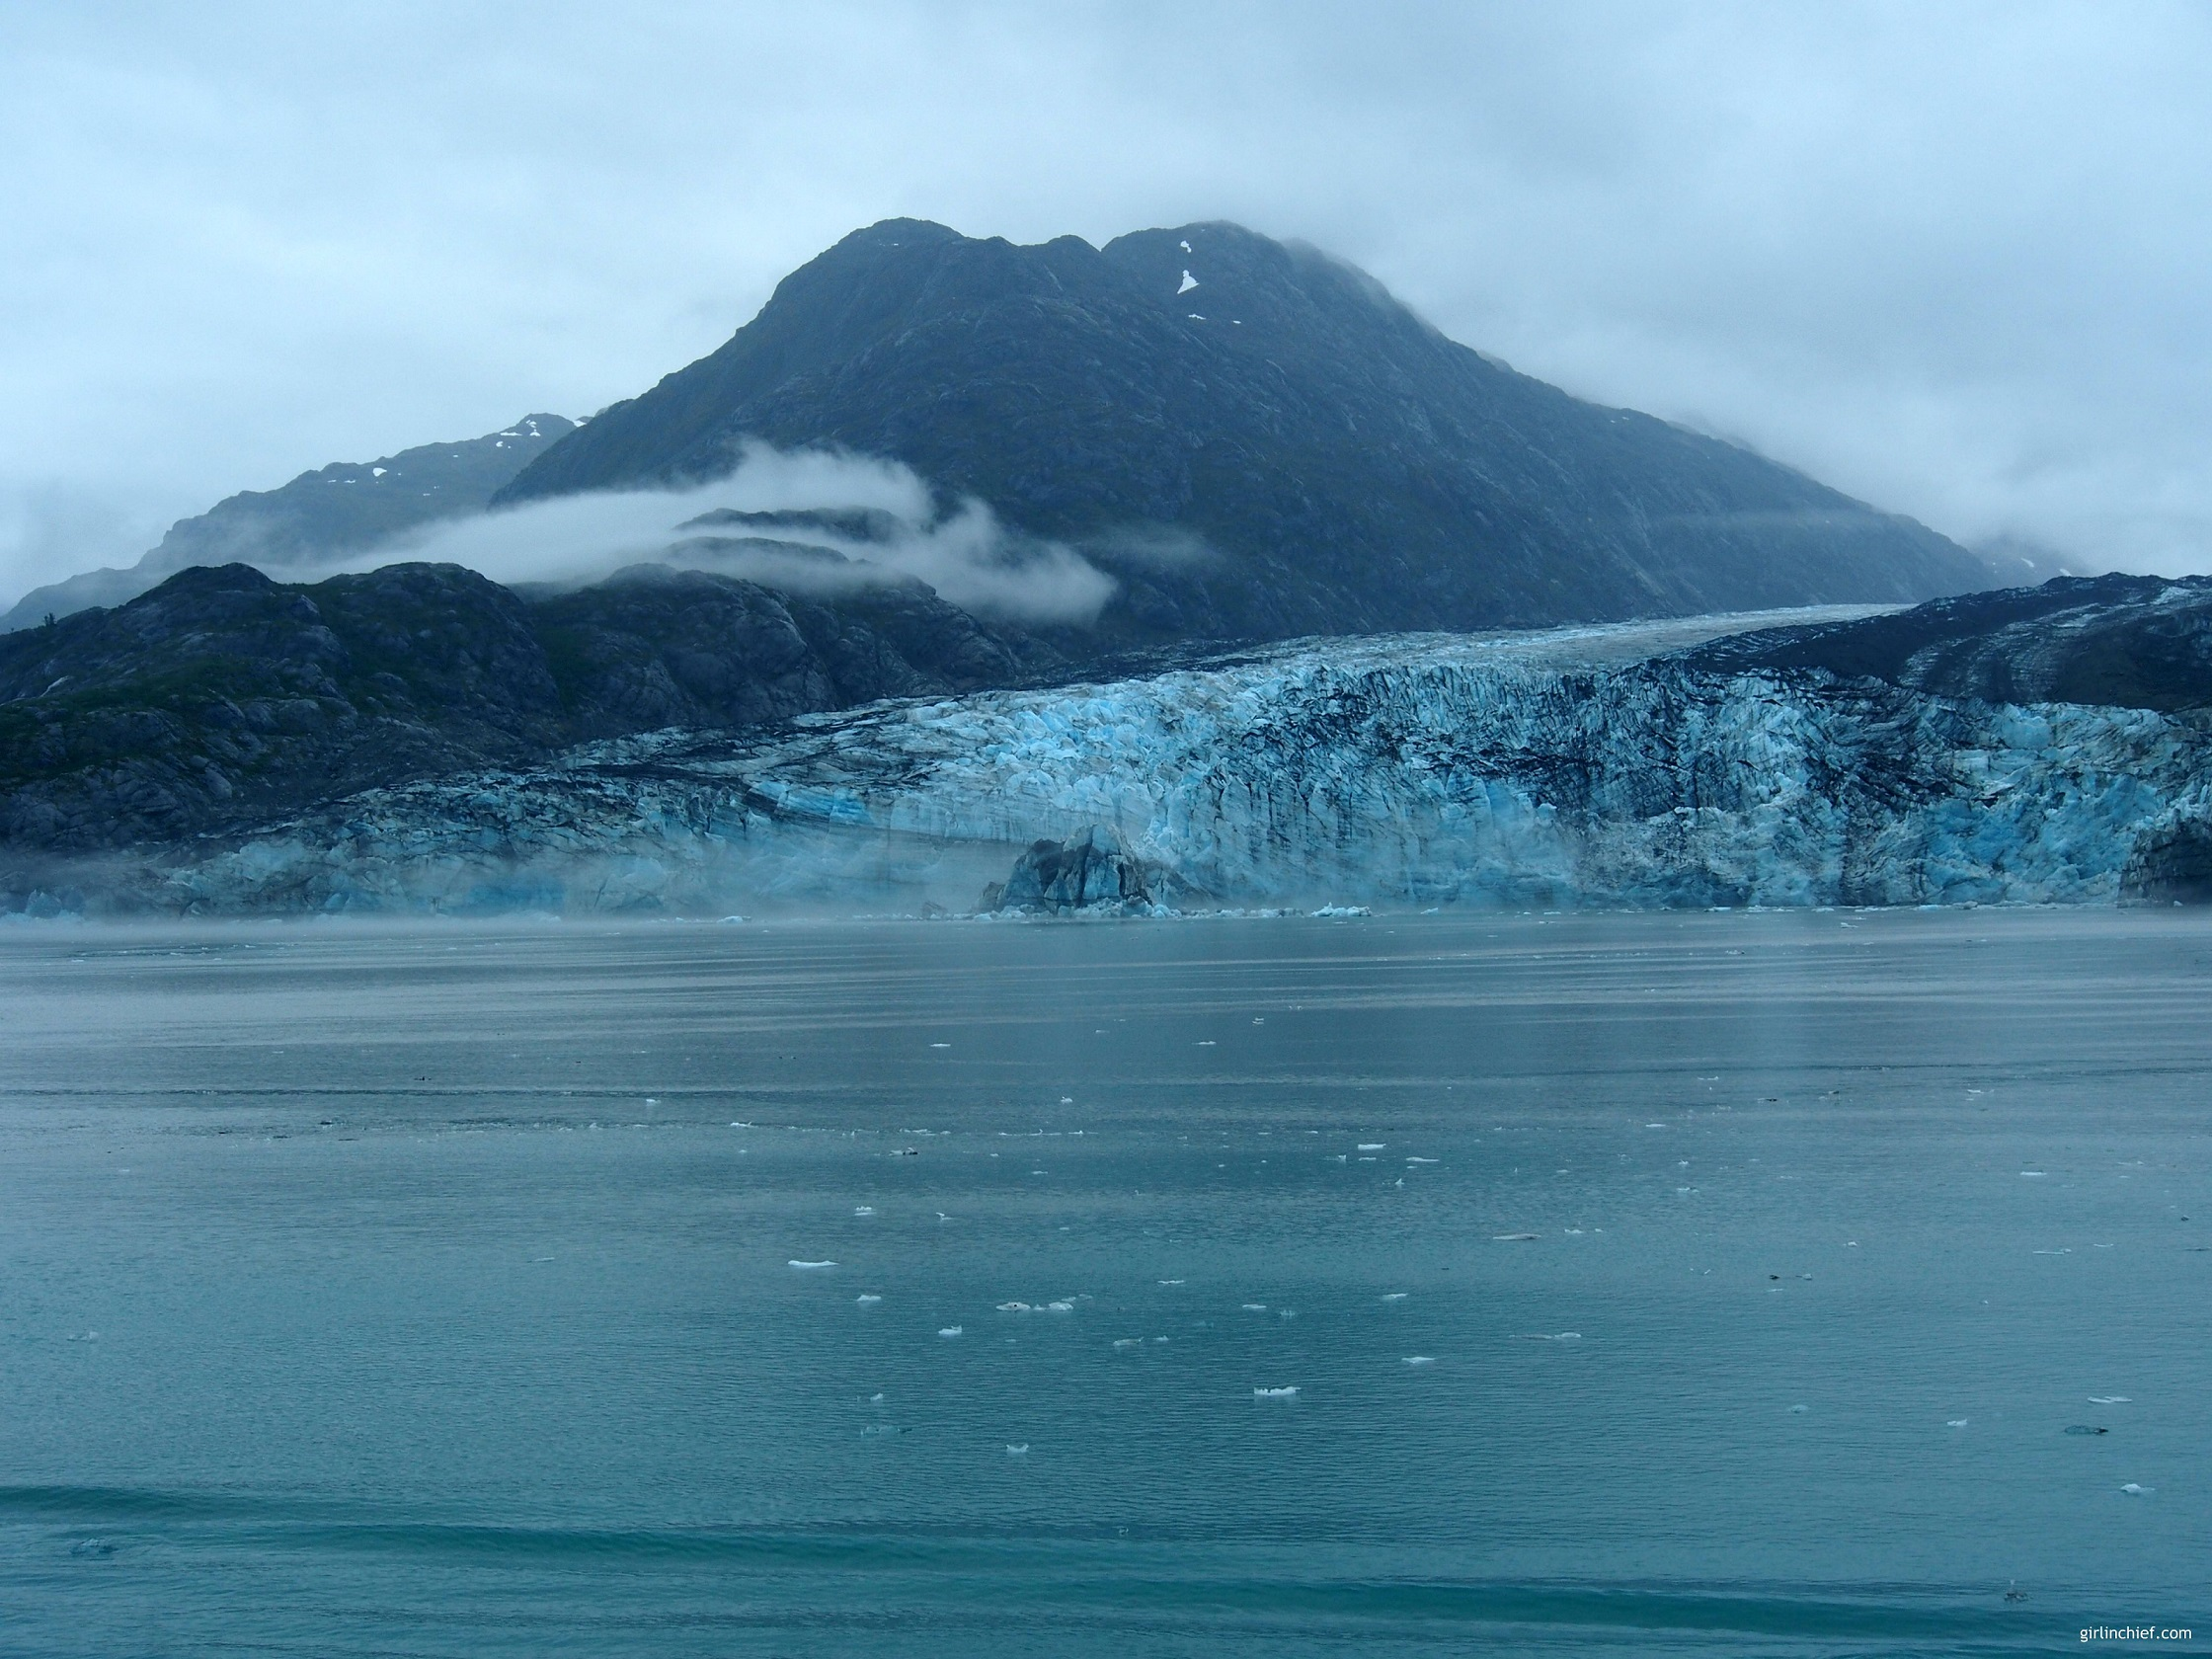 Alaska Cruise: Cruising Through Glacier Bay #alaskacruise #alaska #cruisevacation #glacierbay #glacier